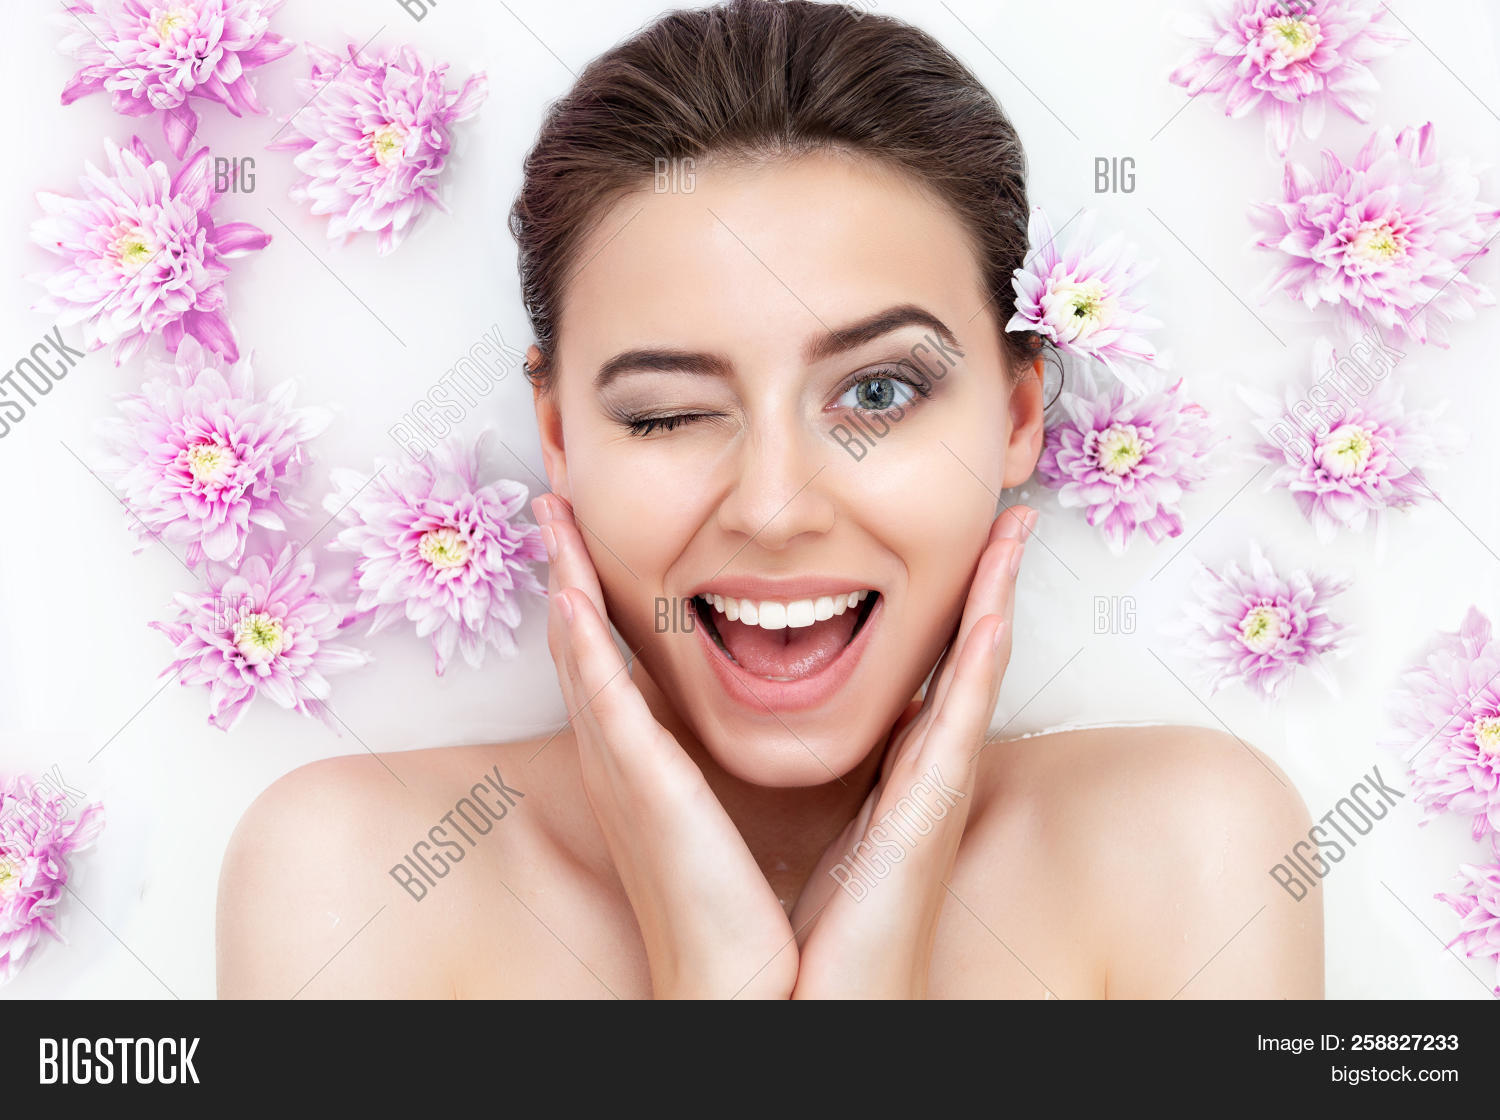 attractive,ayurveda,bath,beauty,body,bright,care,clean,cosmetic,cosmetology,face,facial,fashion,female,floral,flower,fresh,girl,green,hair,head,health,healthy,leafs,lifestyle,makeup,milk,natural,nature,peeling,pink,portrait,pretty,scrub,sensuality,shampoo,skin,smile,soap,spa,spring,tenderness,therapy,treatment,water,wellness,woman,women,young